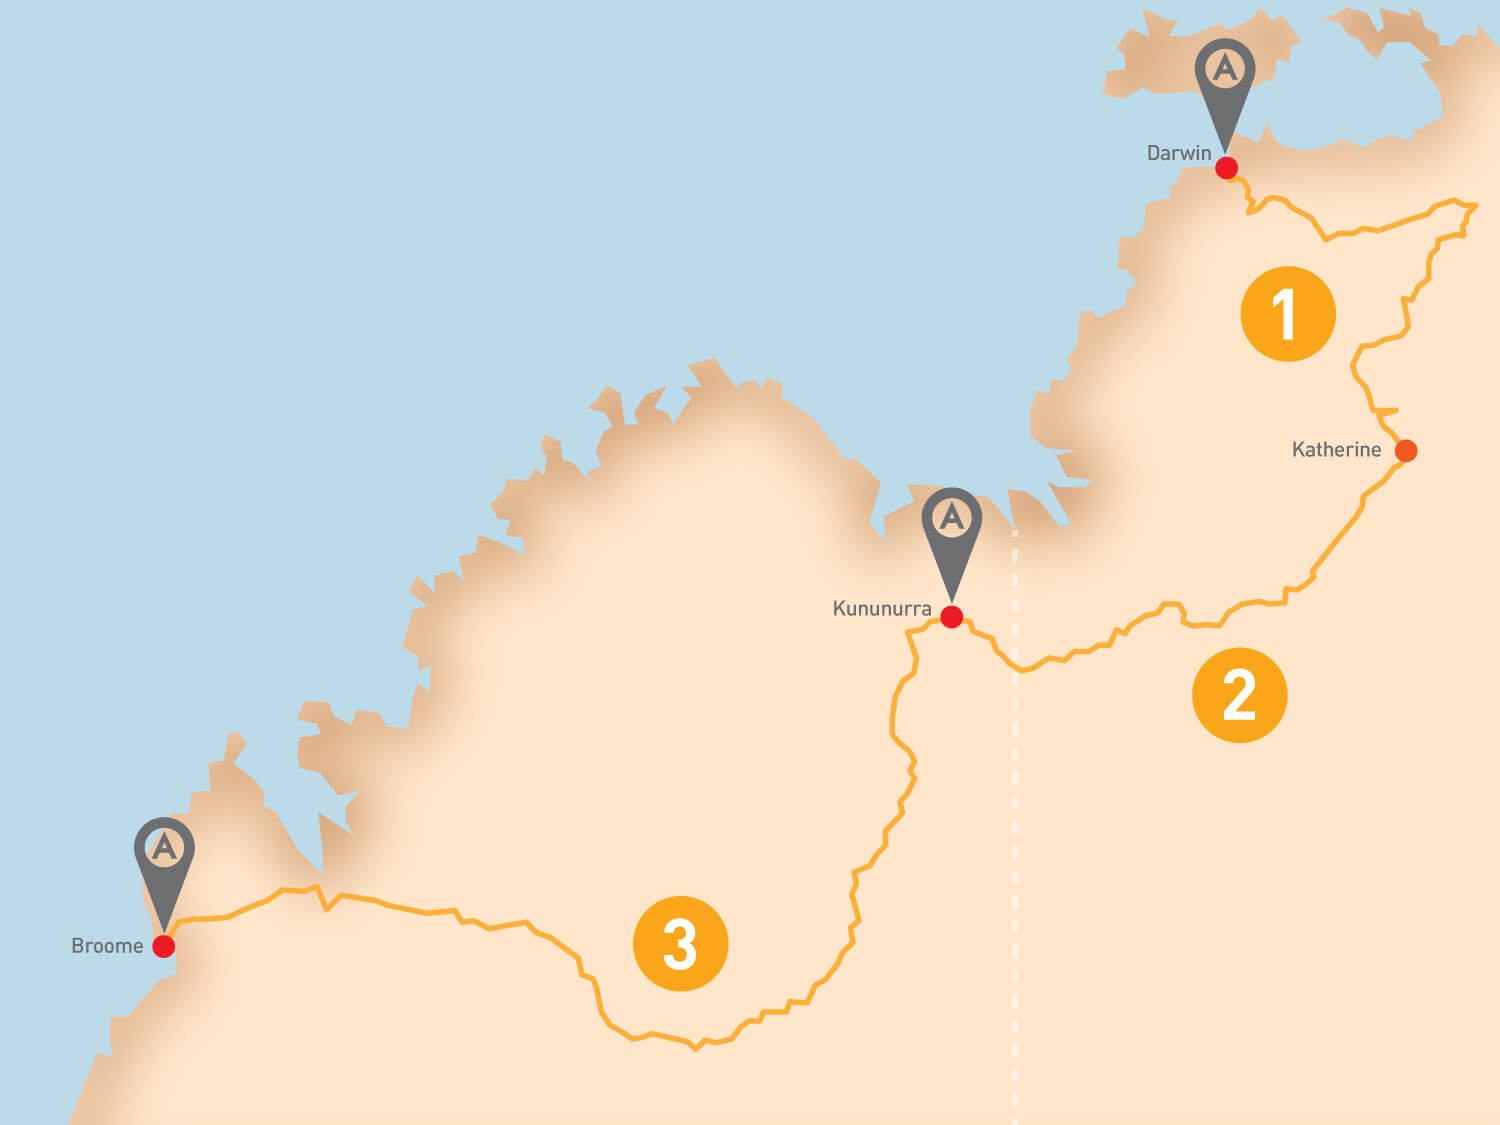 Darwin to Broome - Tour Route